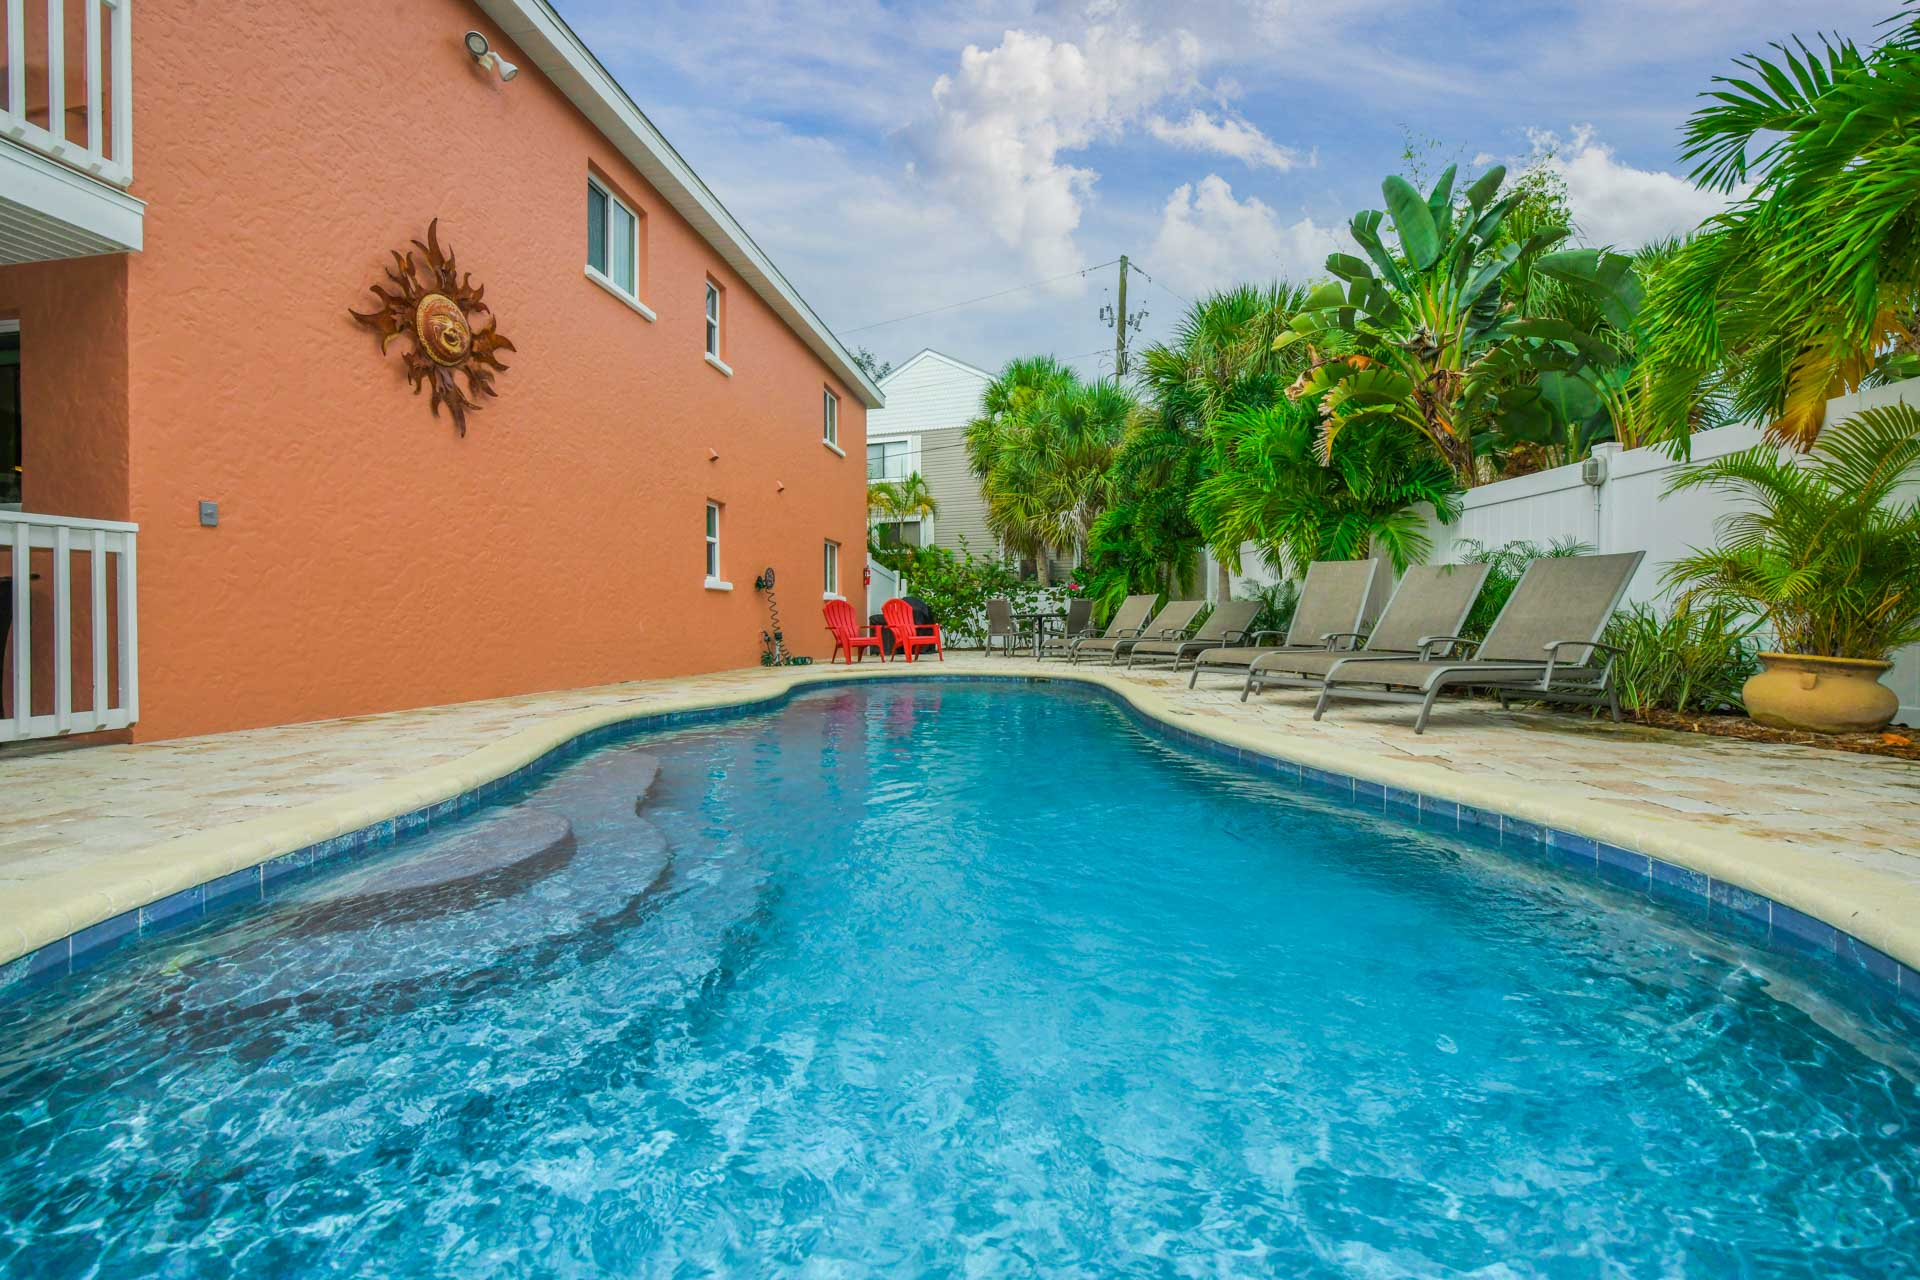 Dive on into the heated pool